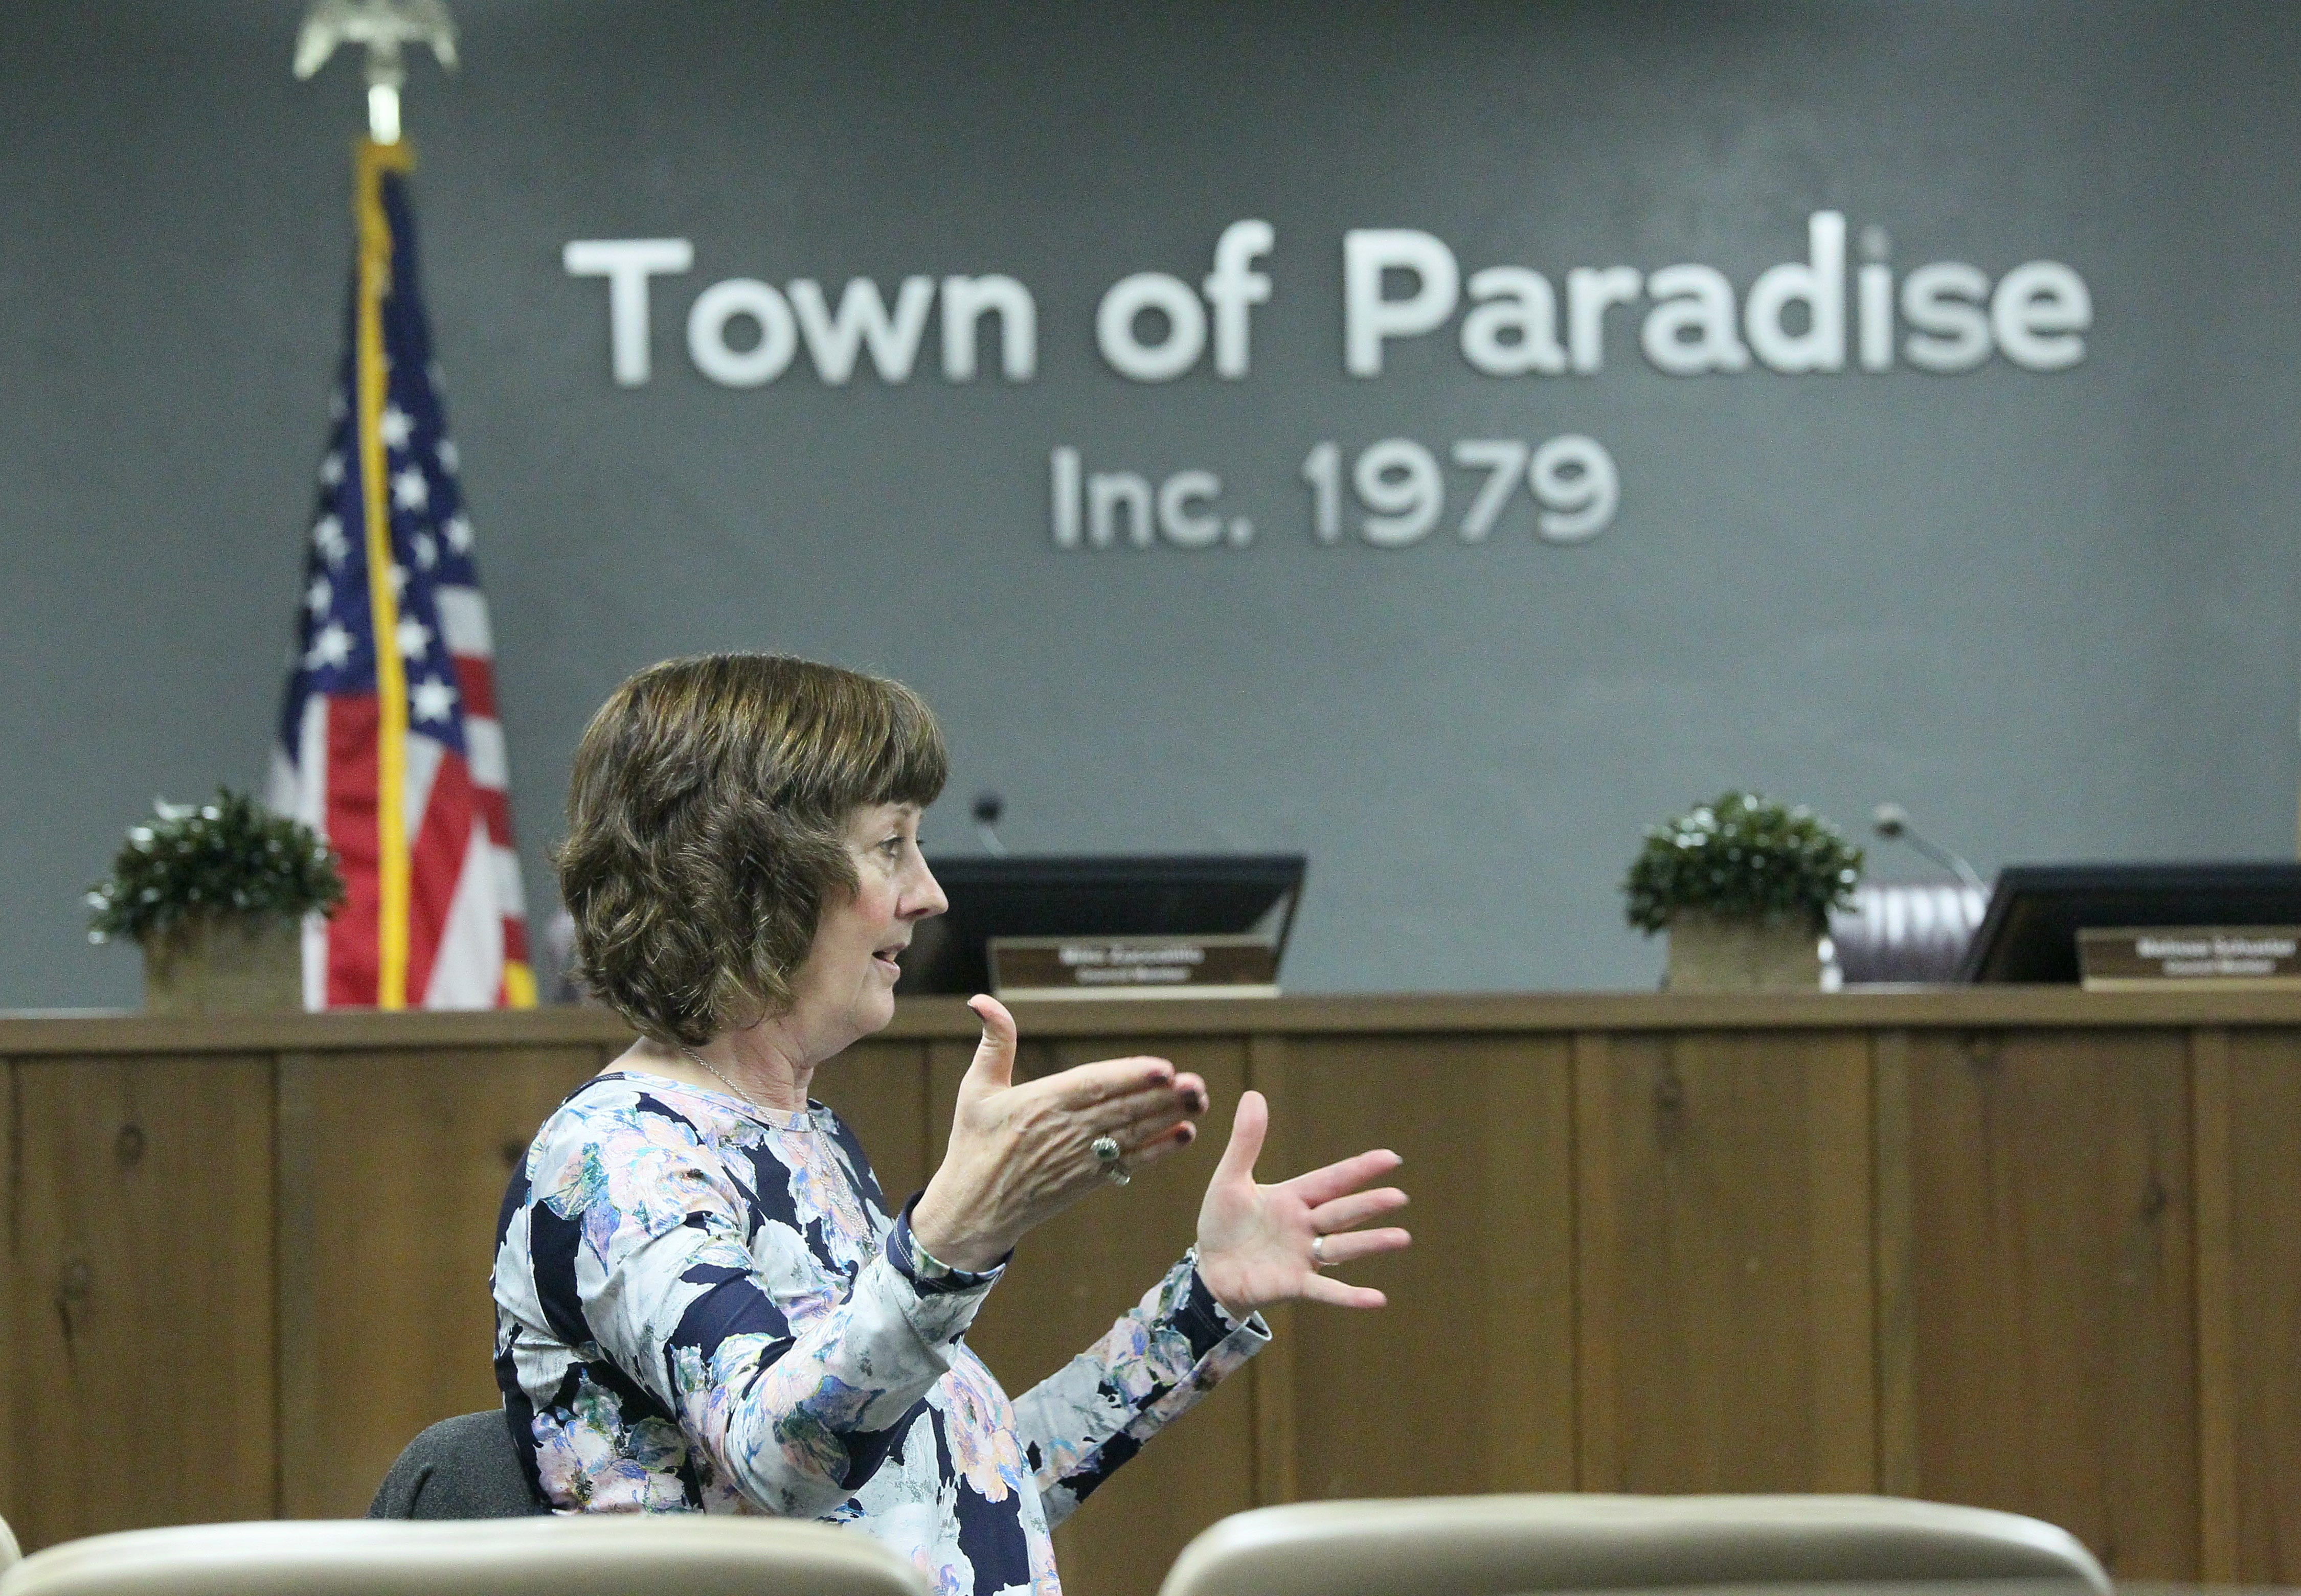 Paradise Mayor Jody Jones said even though there were traffic jams and people died trying to flee the town during the Camp Fire, she still recommends communities develop evacuation plans.